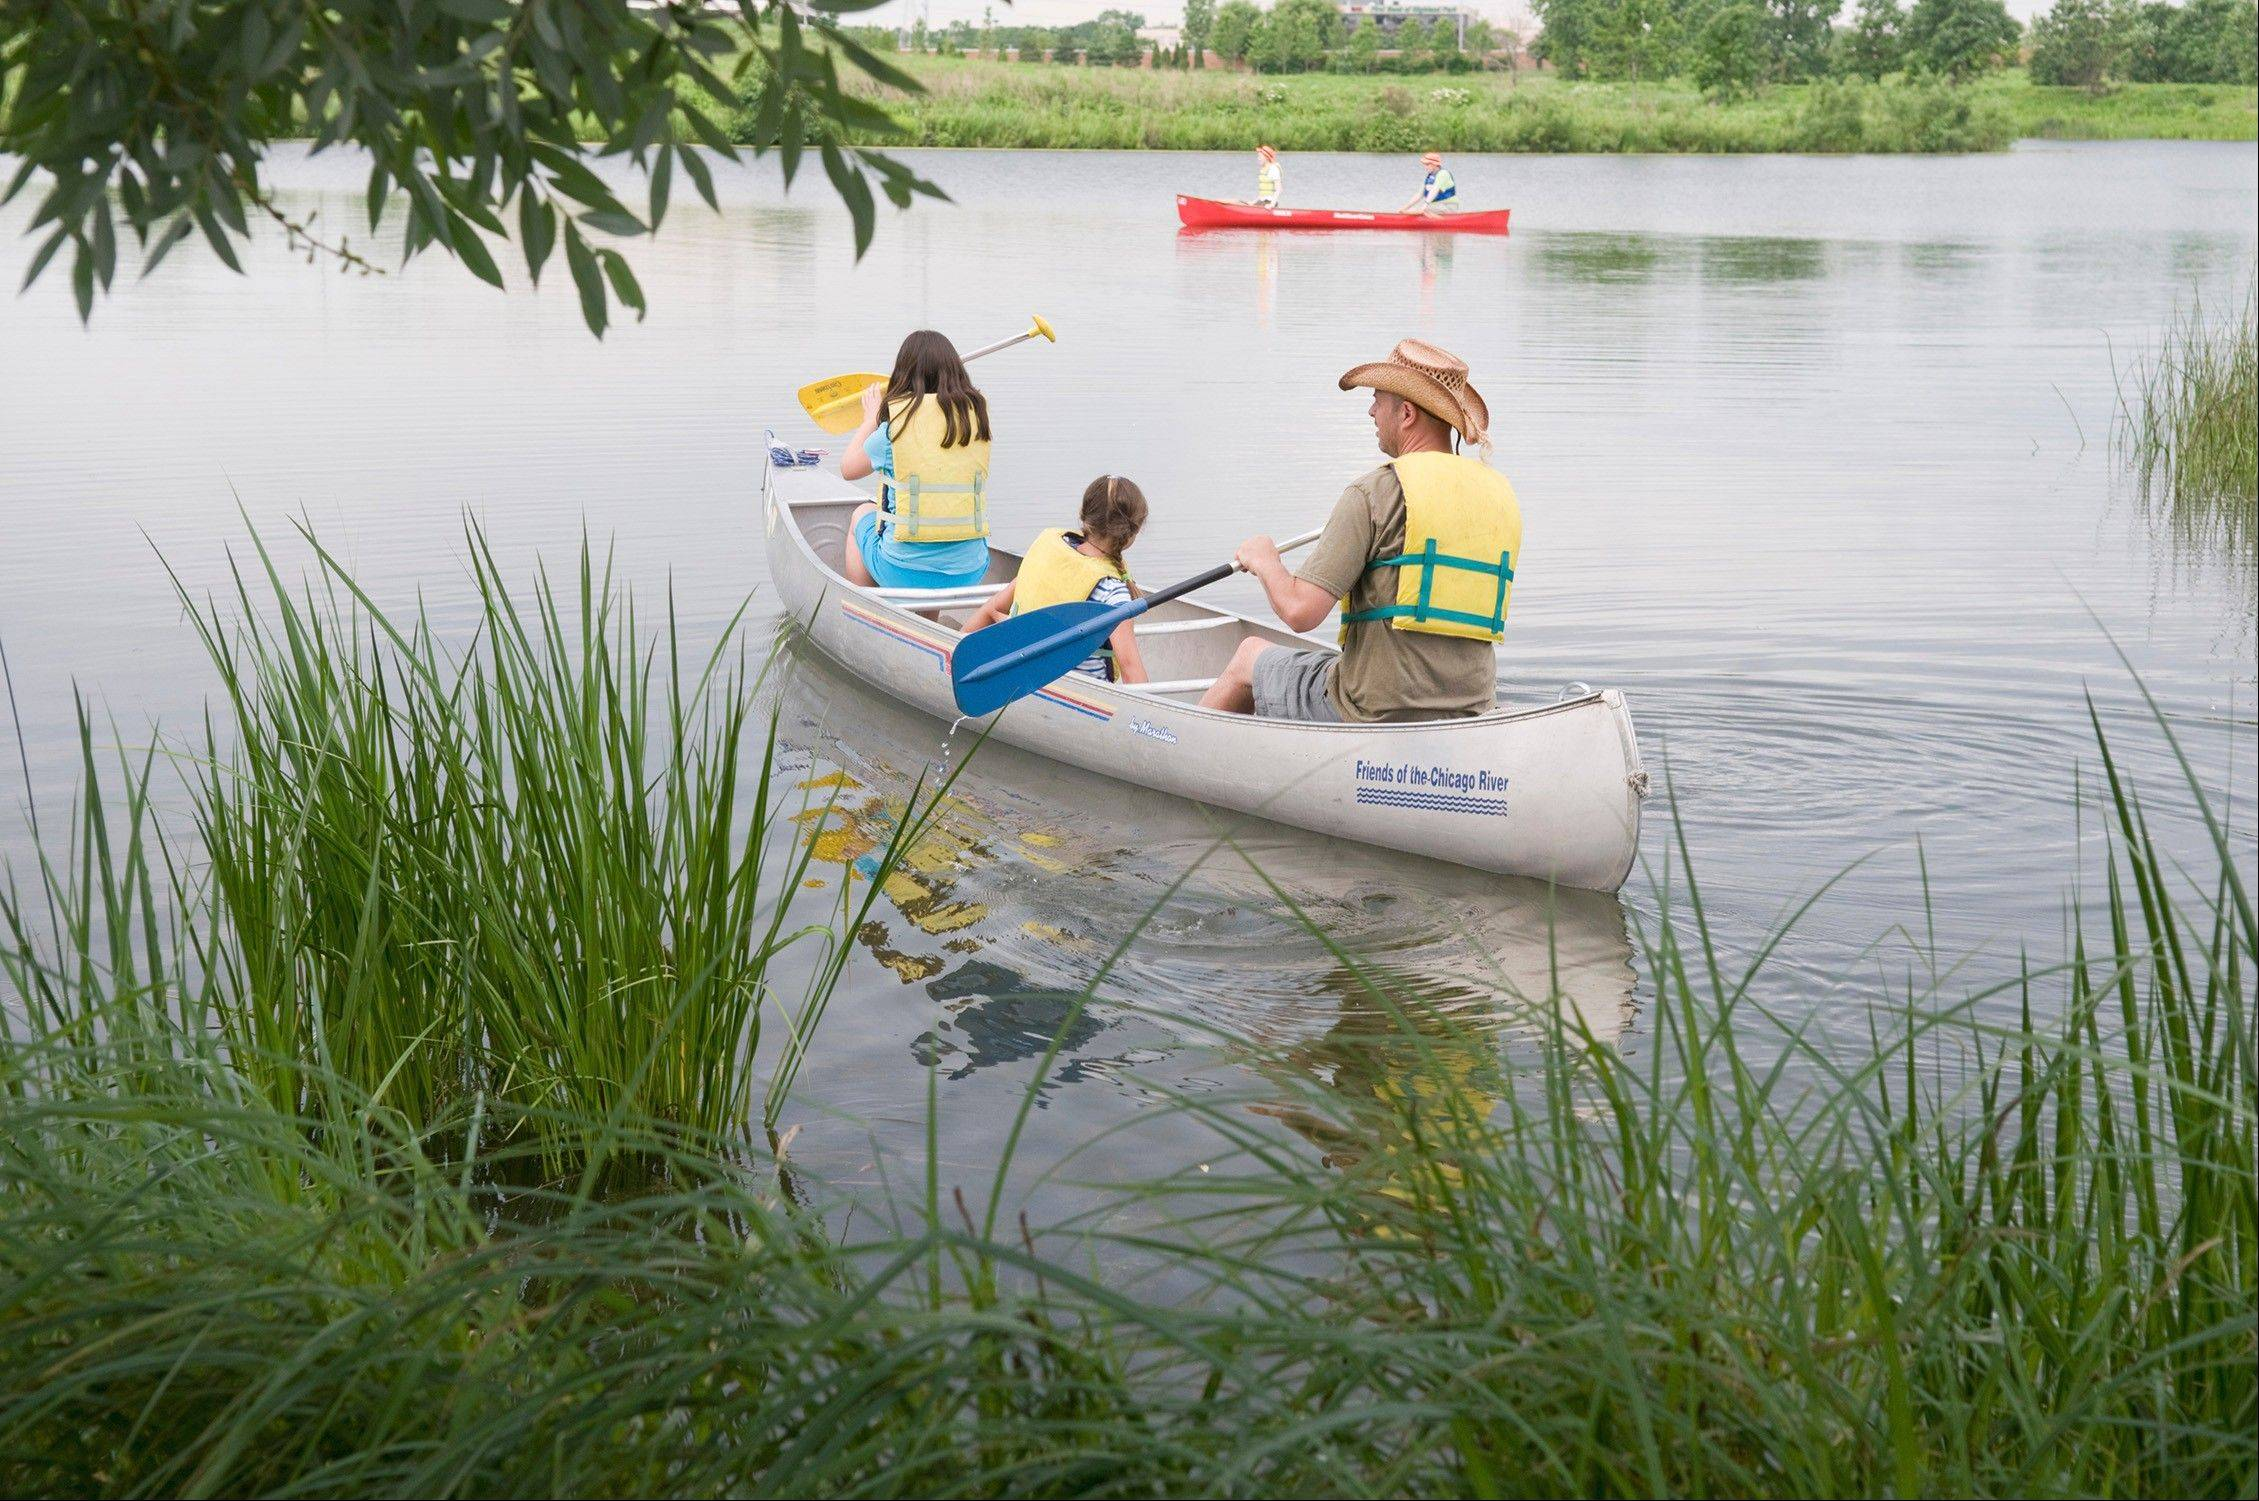 Spend Father's Day paddling around the Chicago Botanic Garden.